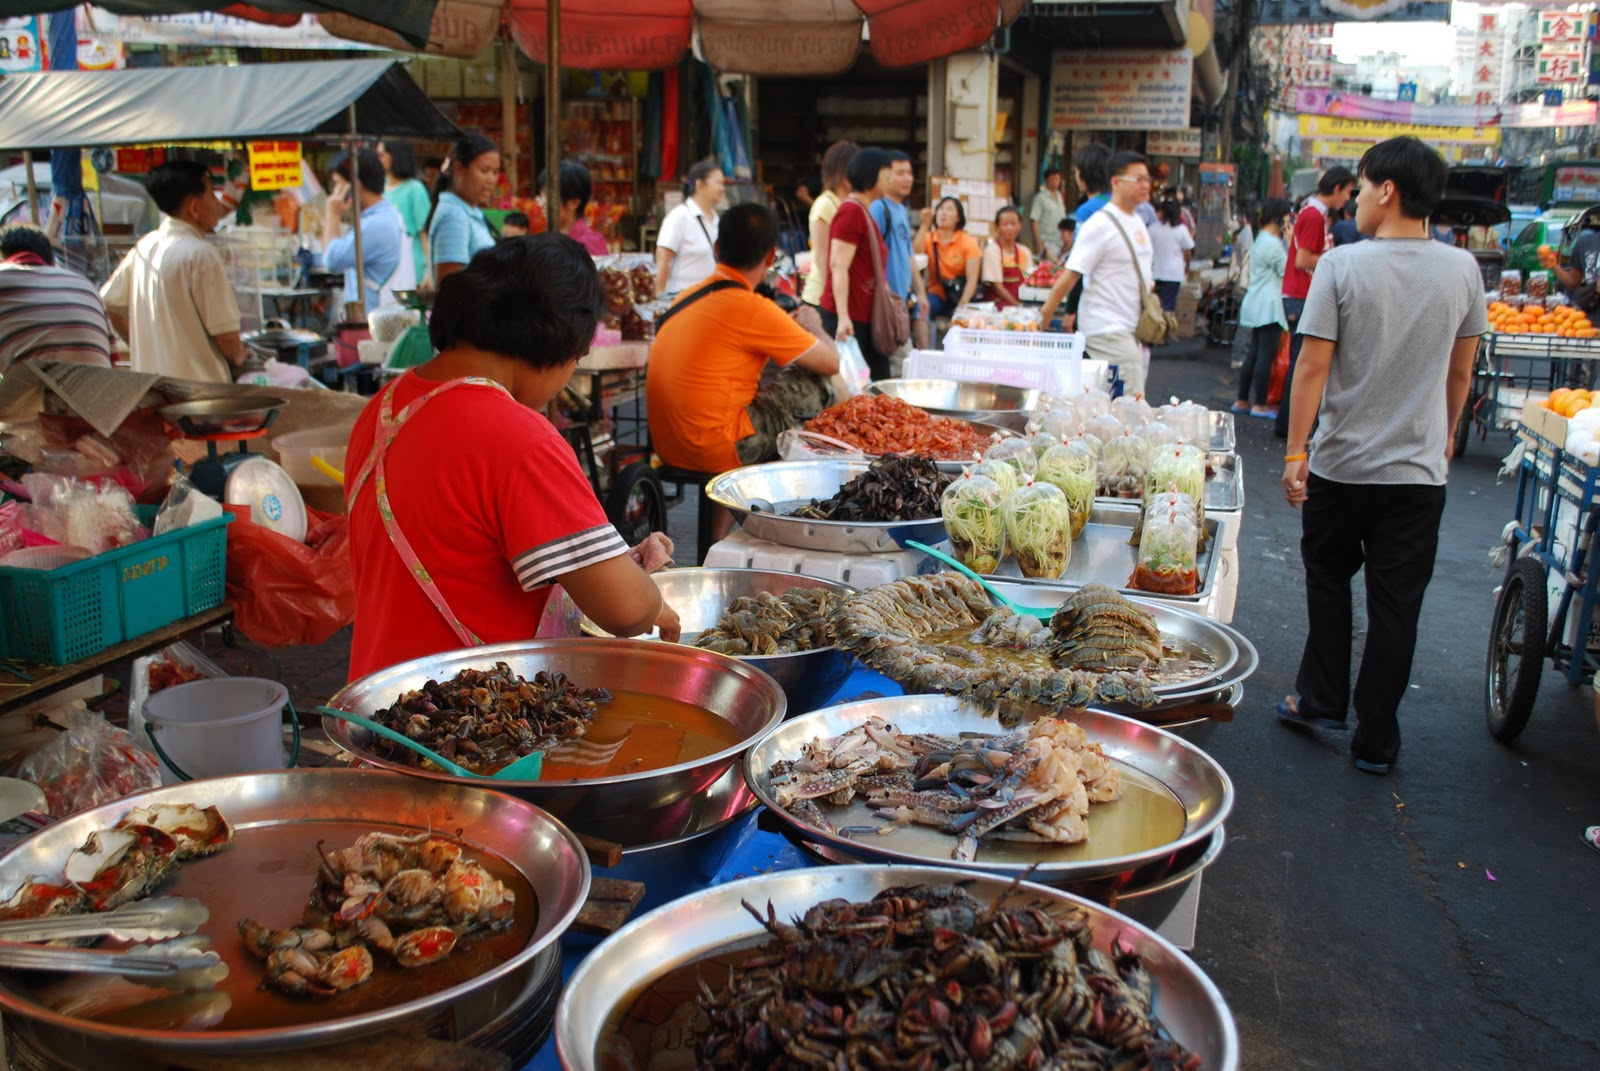 penang food street culture Penang international food festival 2018 celebrate food, a little bit of culture, but mostly food, at this year's edition of the highly-anticipated festival photo: penang international food.